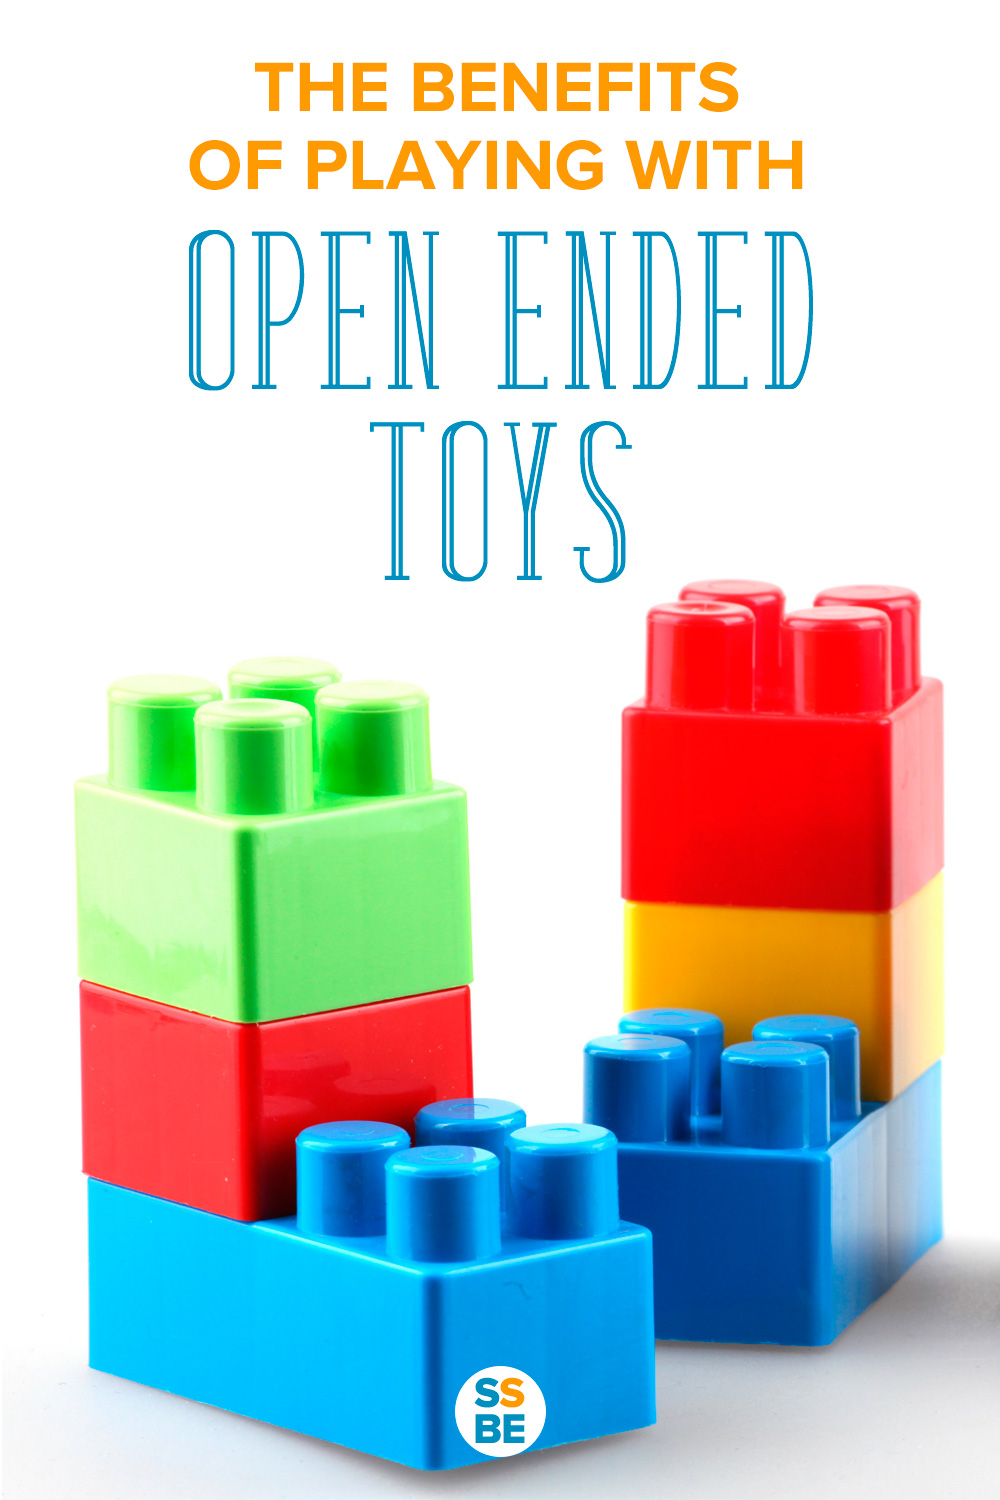 The benefits of open ended play are many. Learn how your child benefits from playing with natural toys with no limits and encourage creativity.